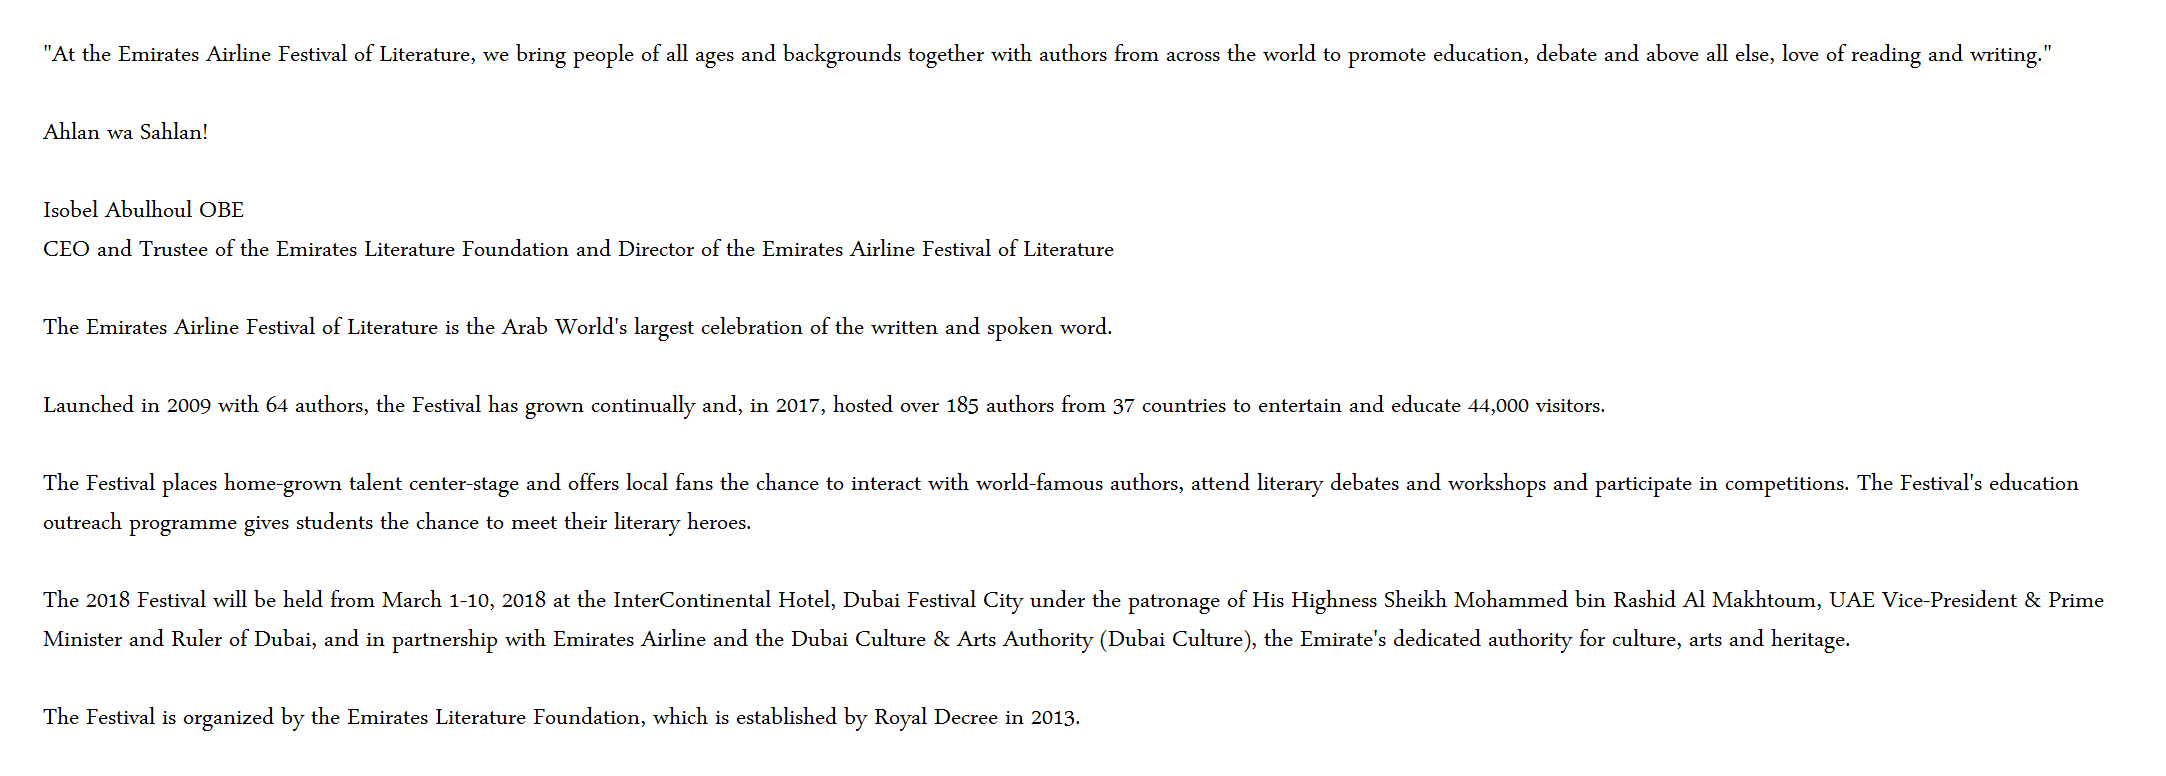 Emirates Airline Festival of Literature - about us